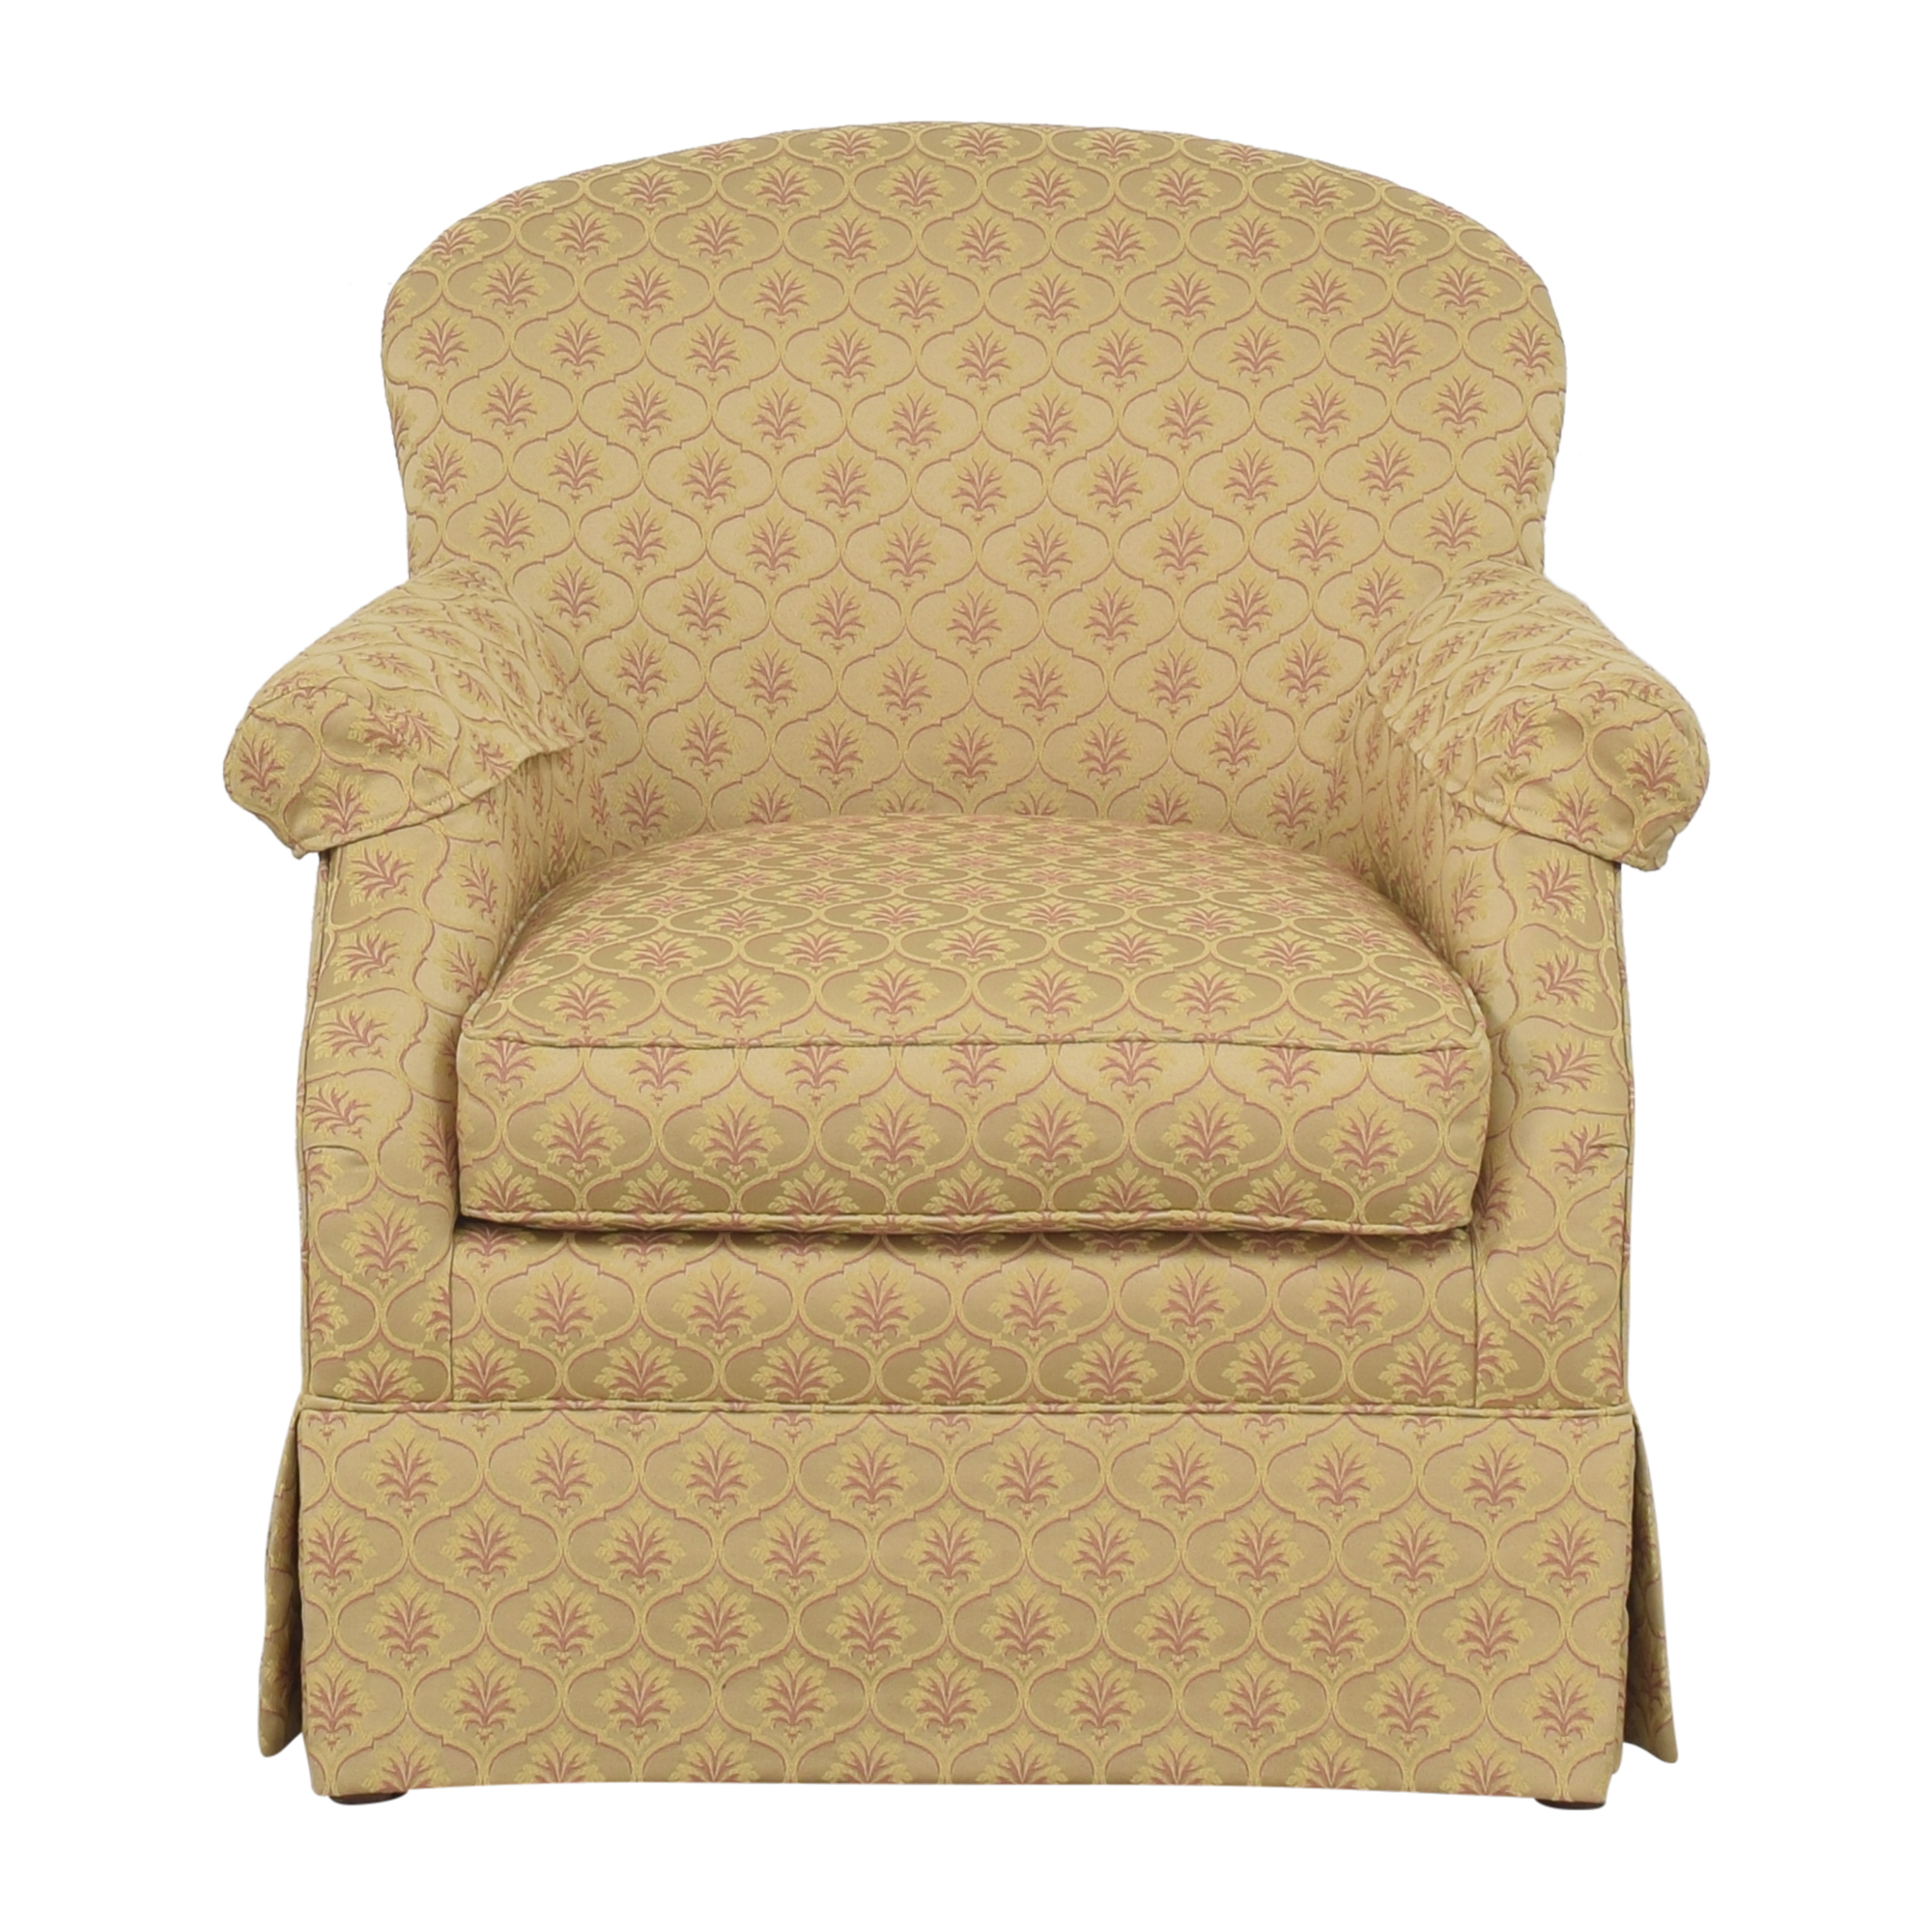 CR Laine Skirted Accent Chair sale